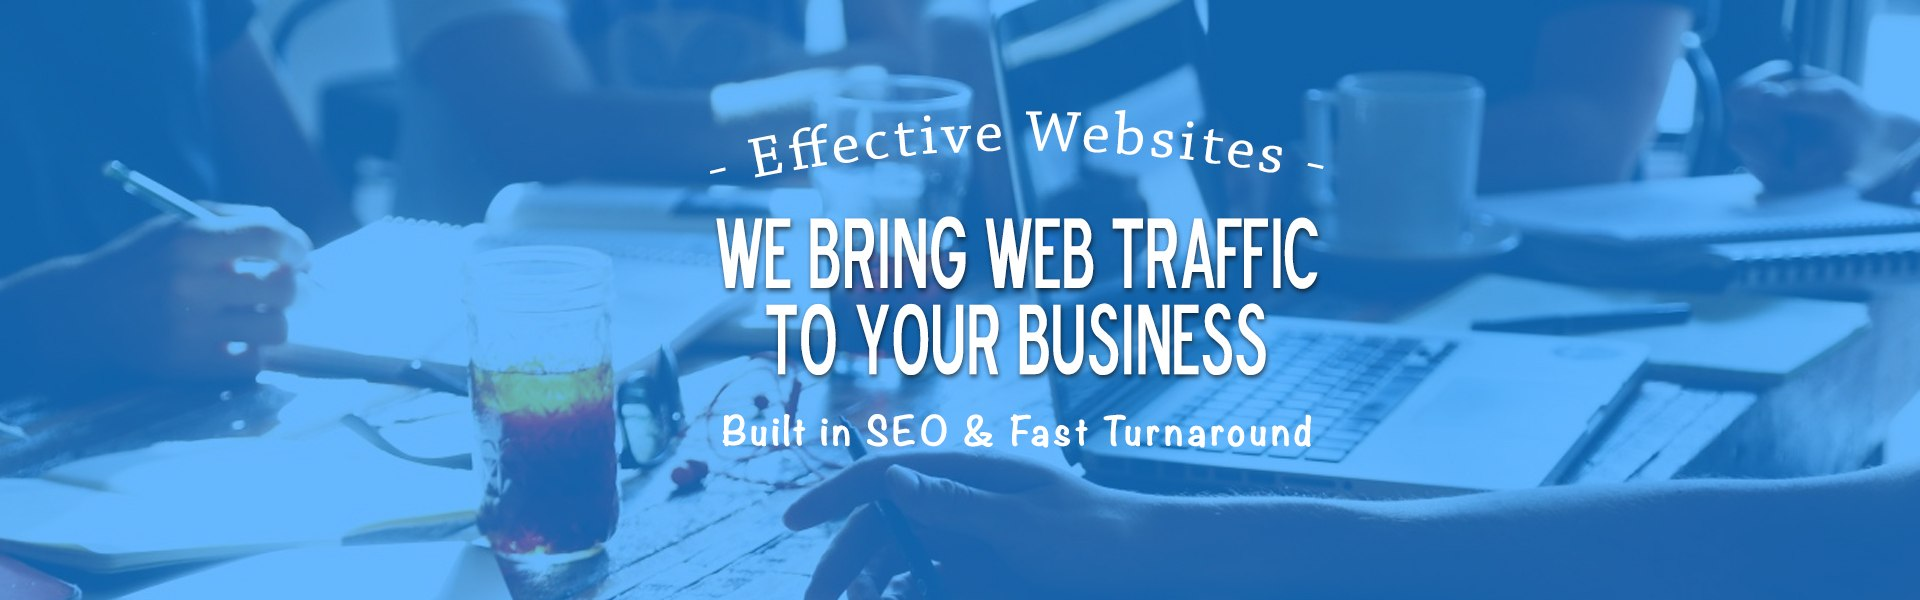 we bring web traffic to your business website